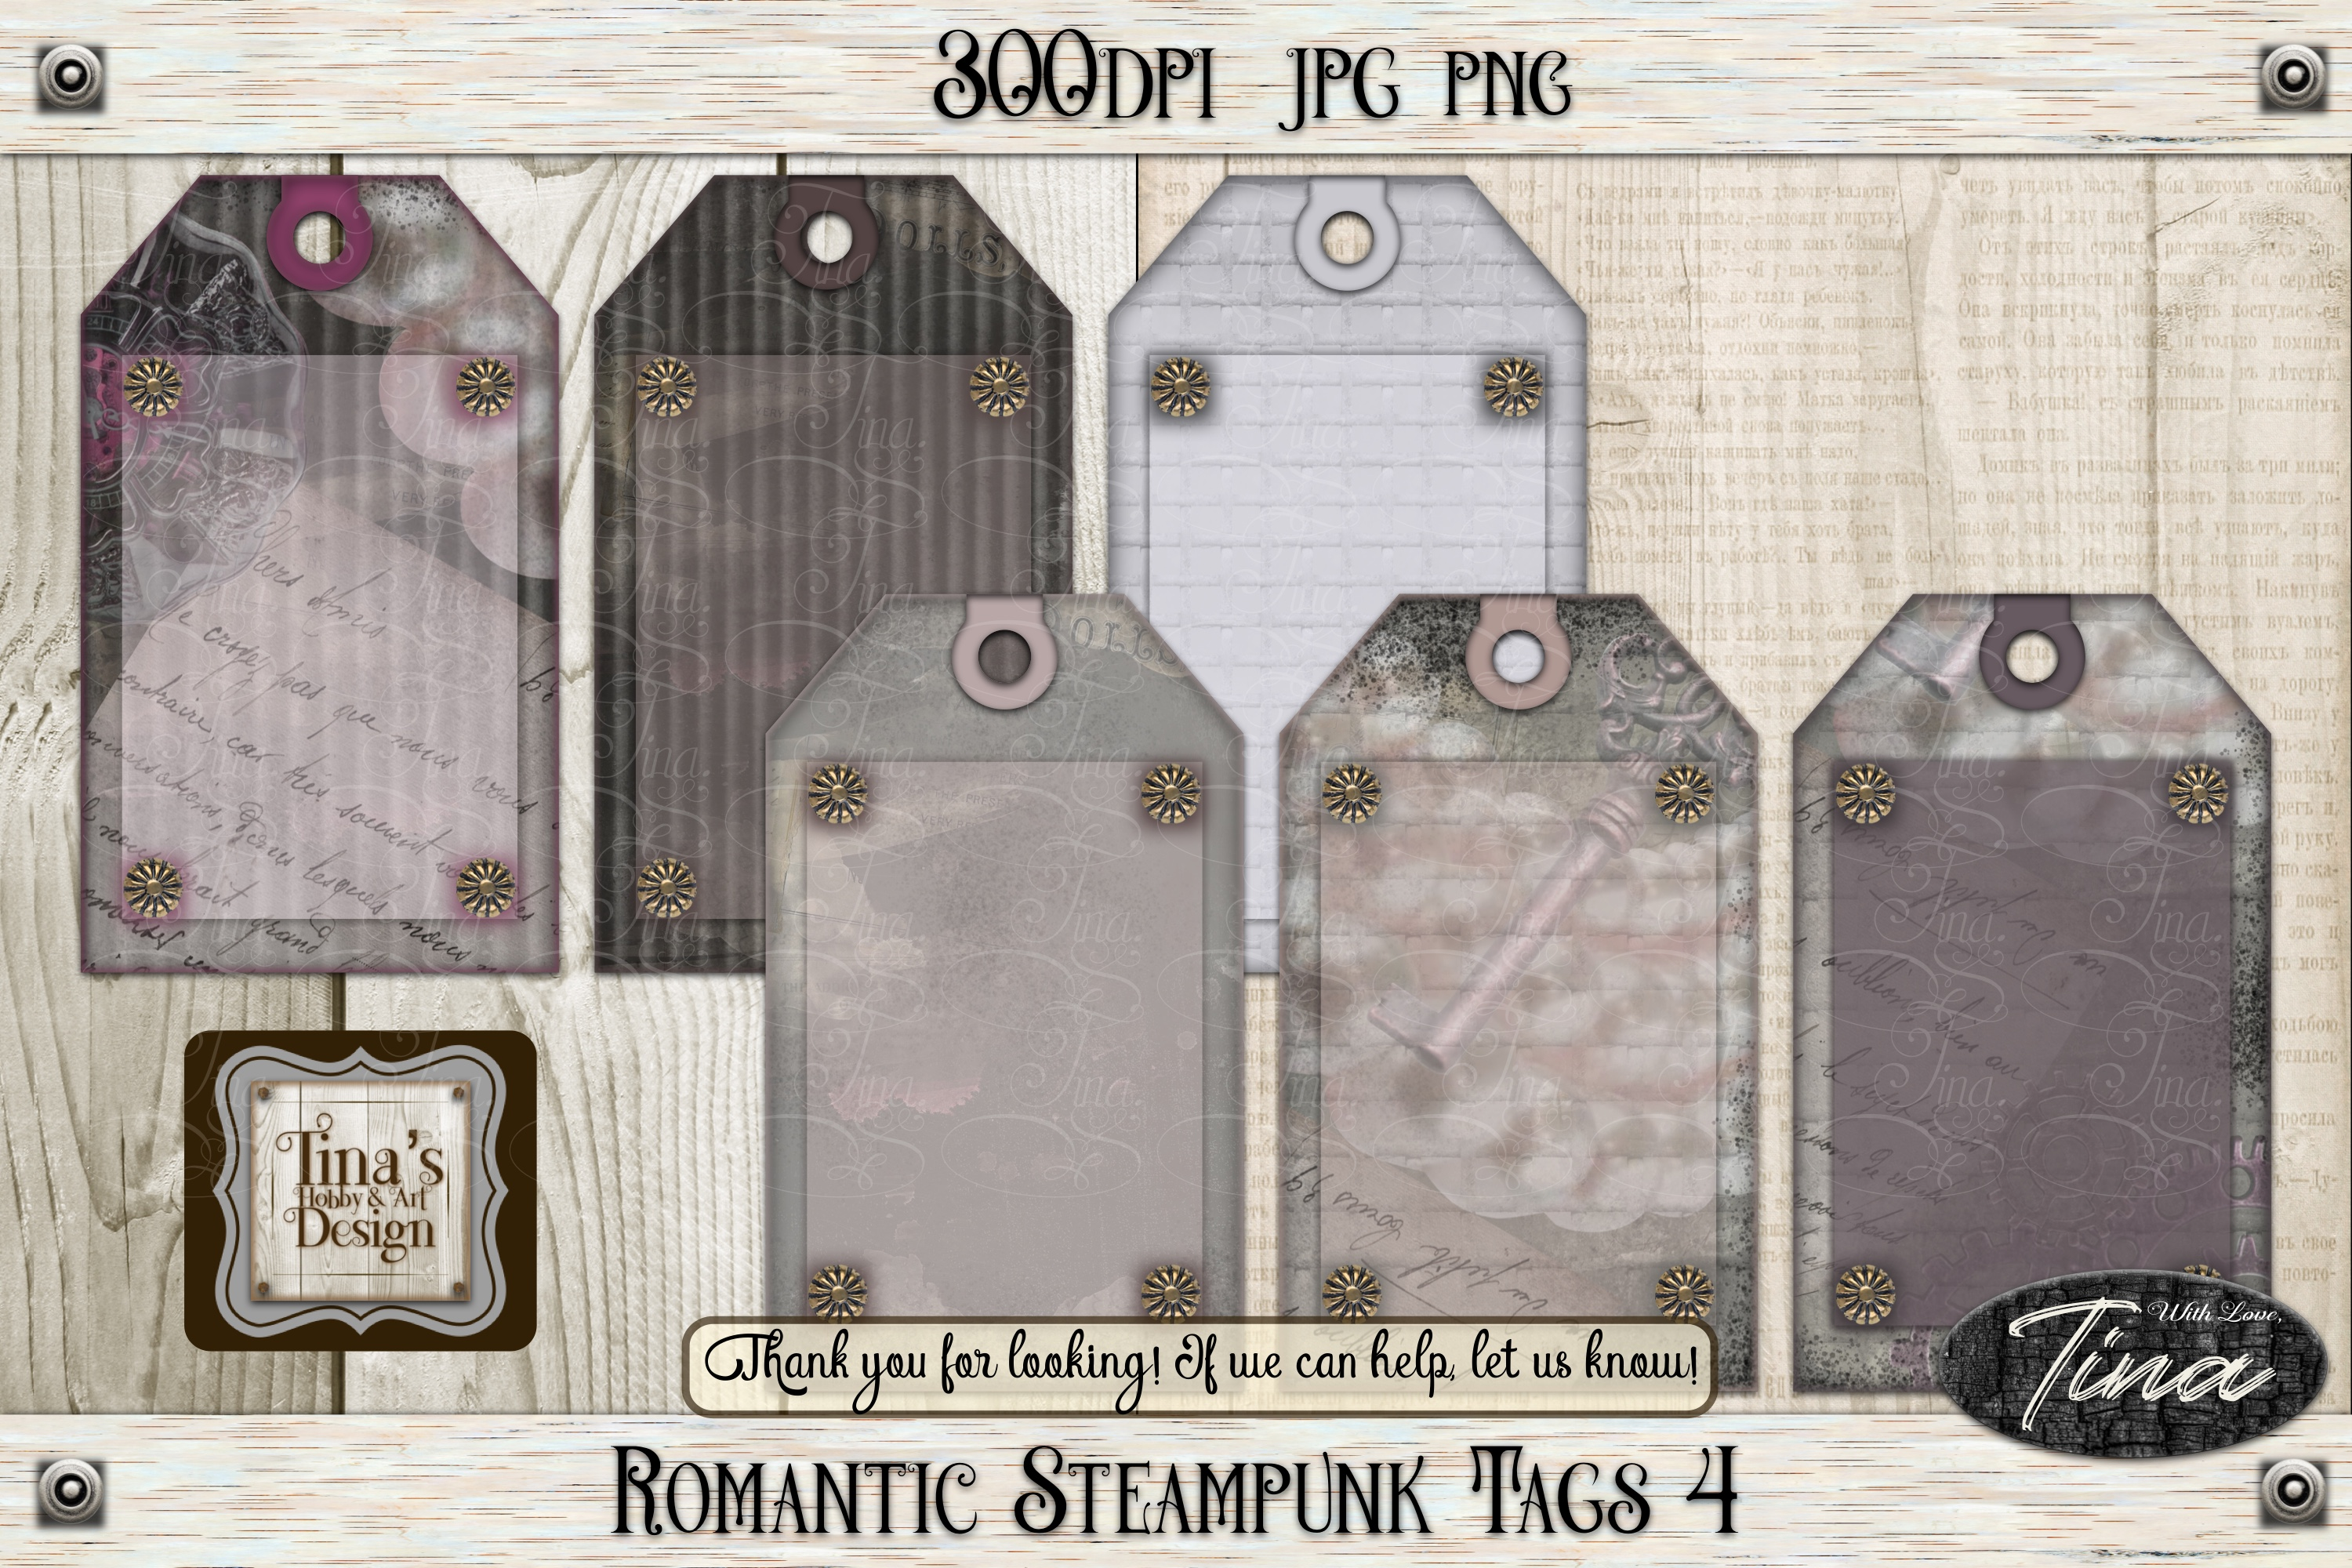 Romantic Steampunk Tags 2 Collage Mauve Grunge 101918RST2 example image 10